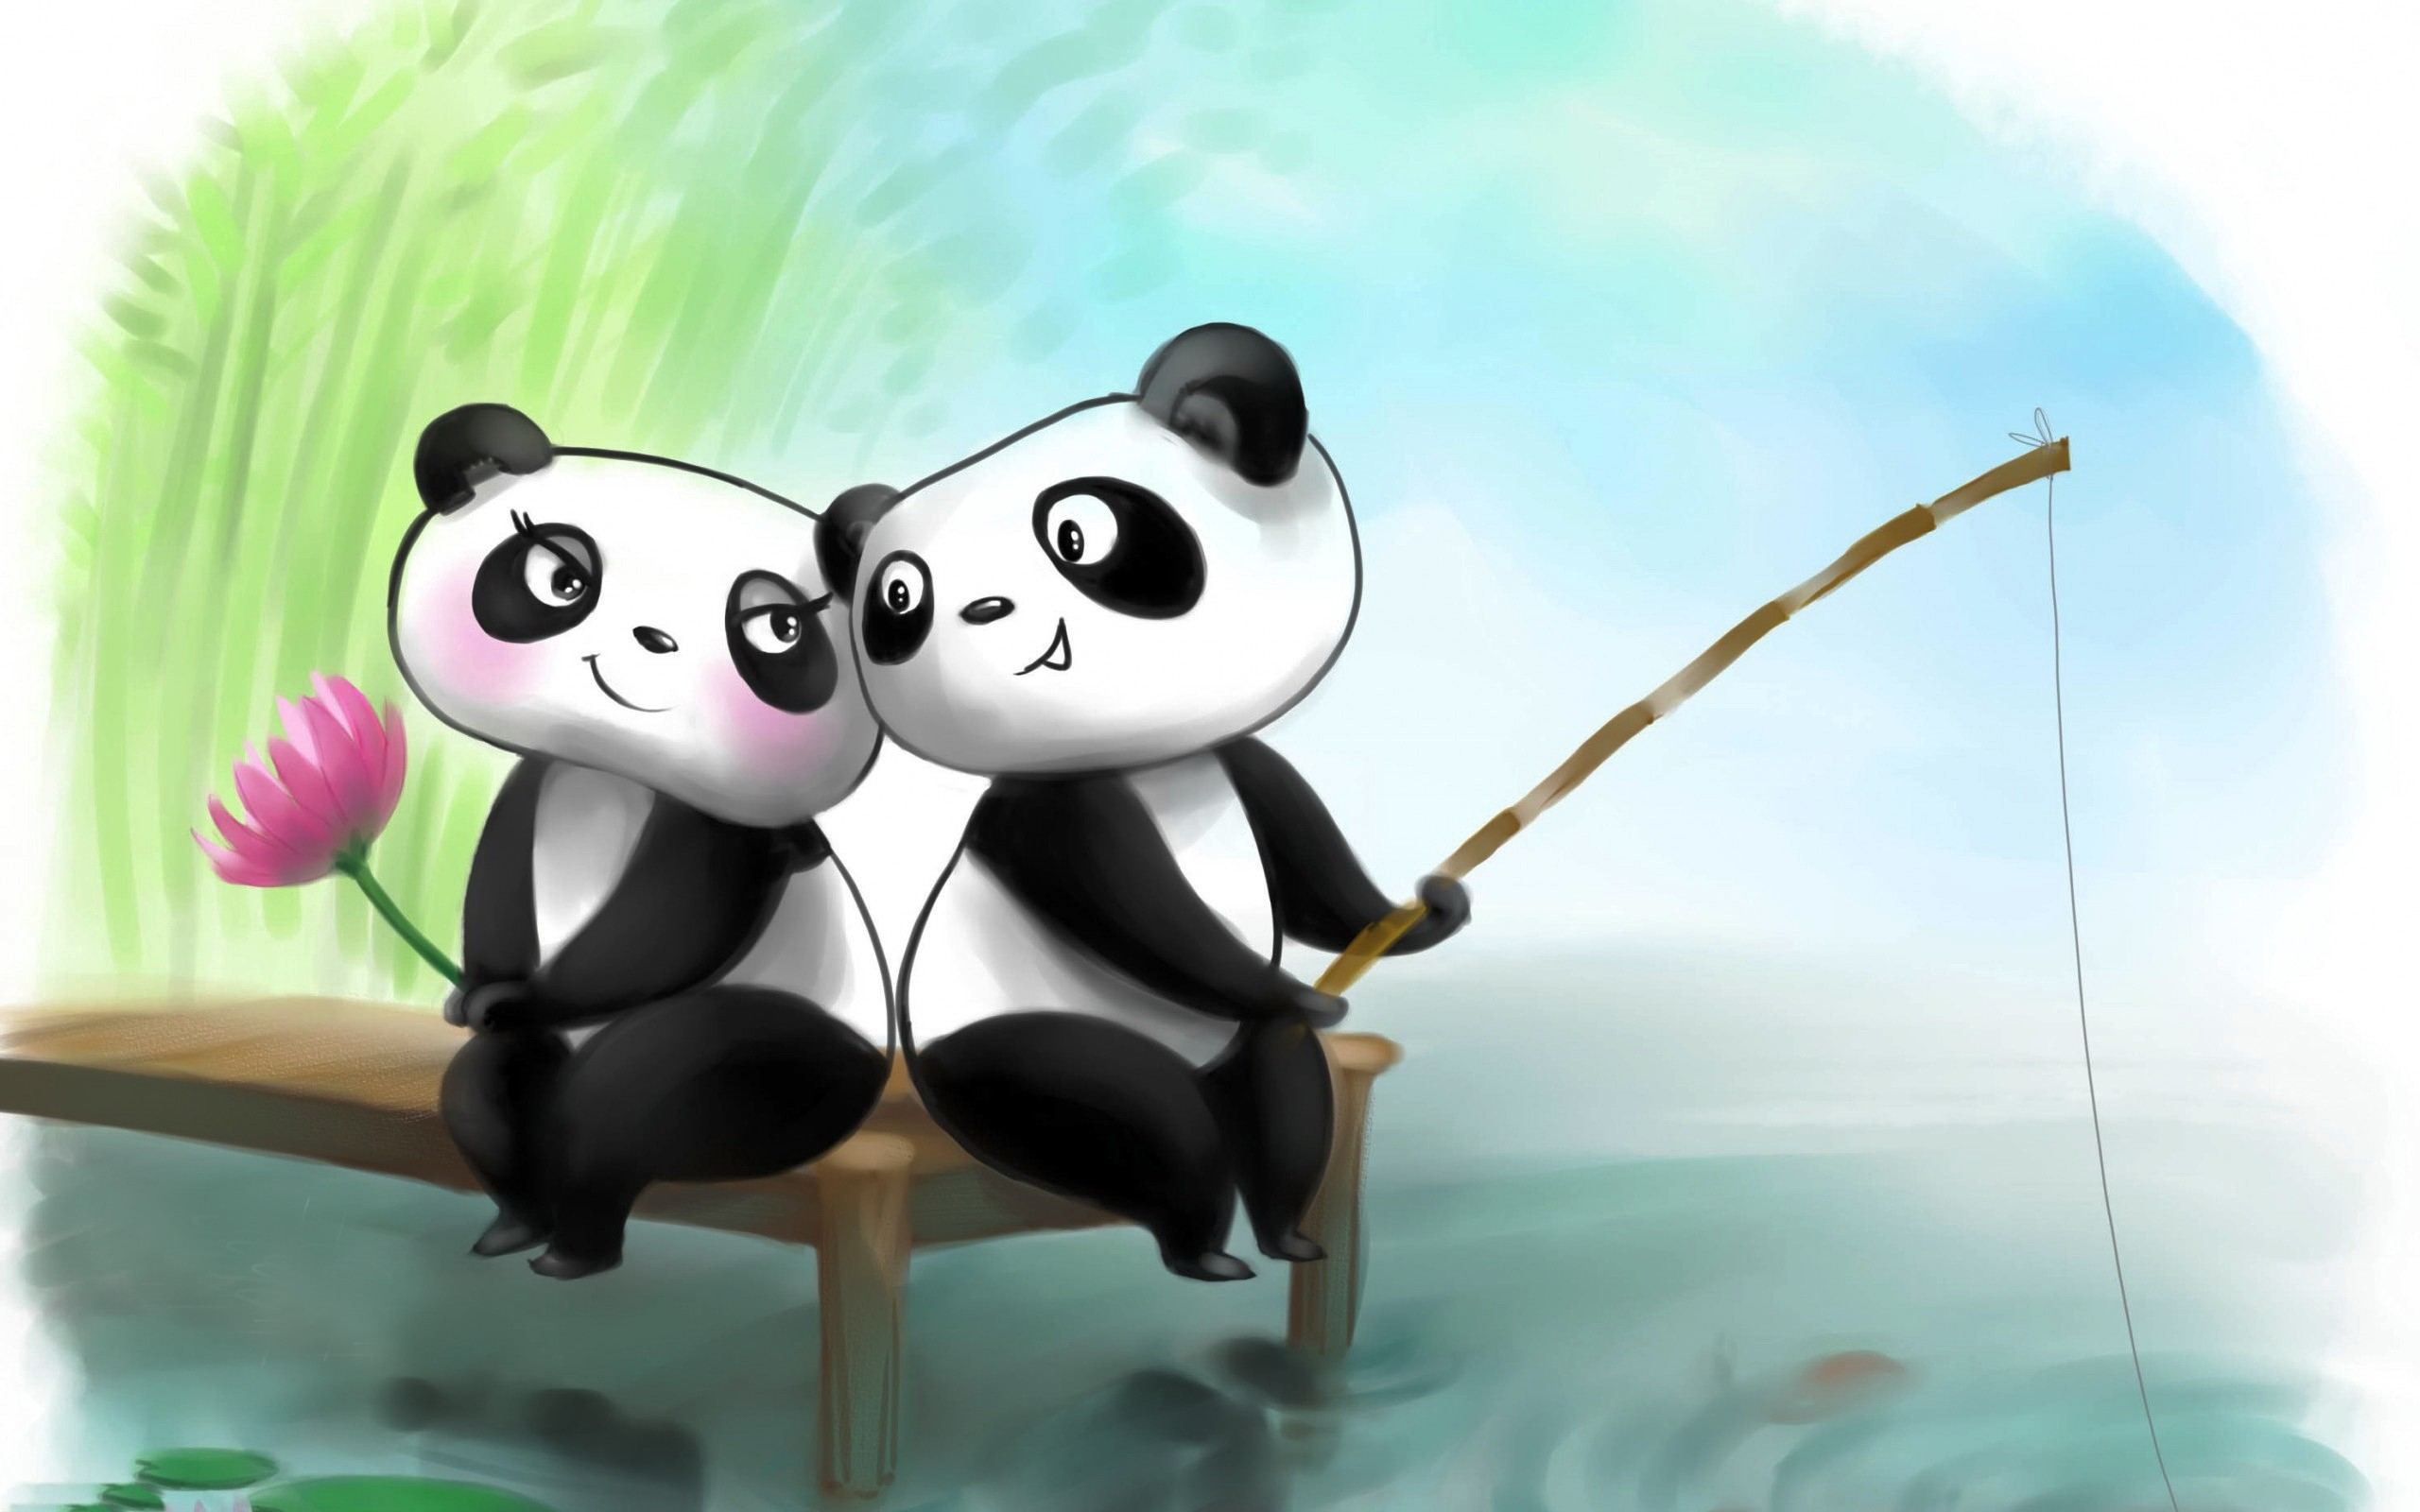 Baby Kung Fu Panda Cute Wallpaper Panda Hd Wallpaper 79 Images